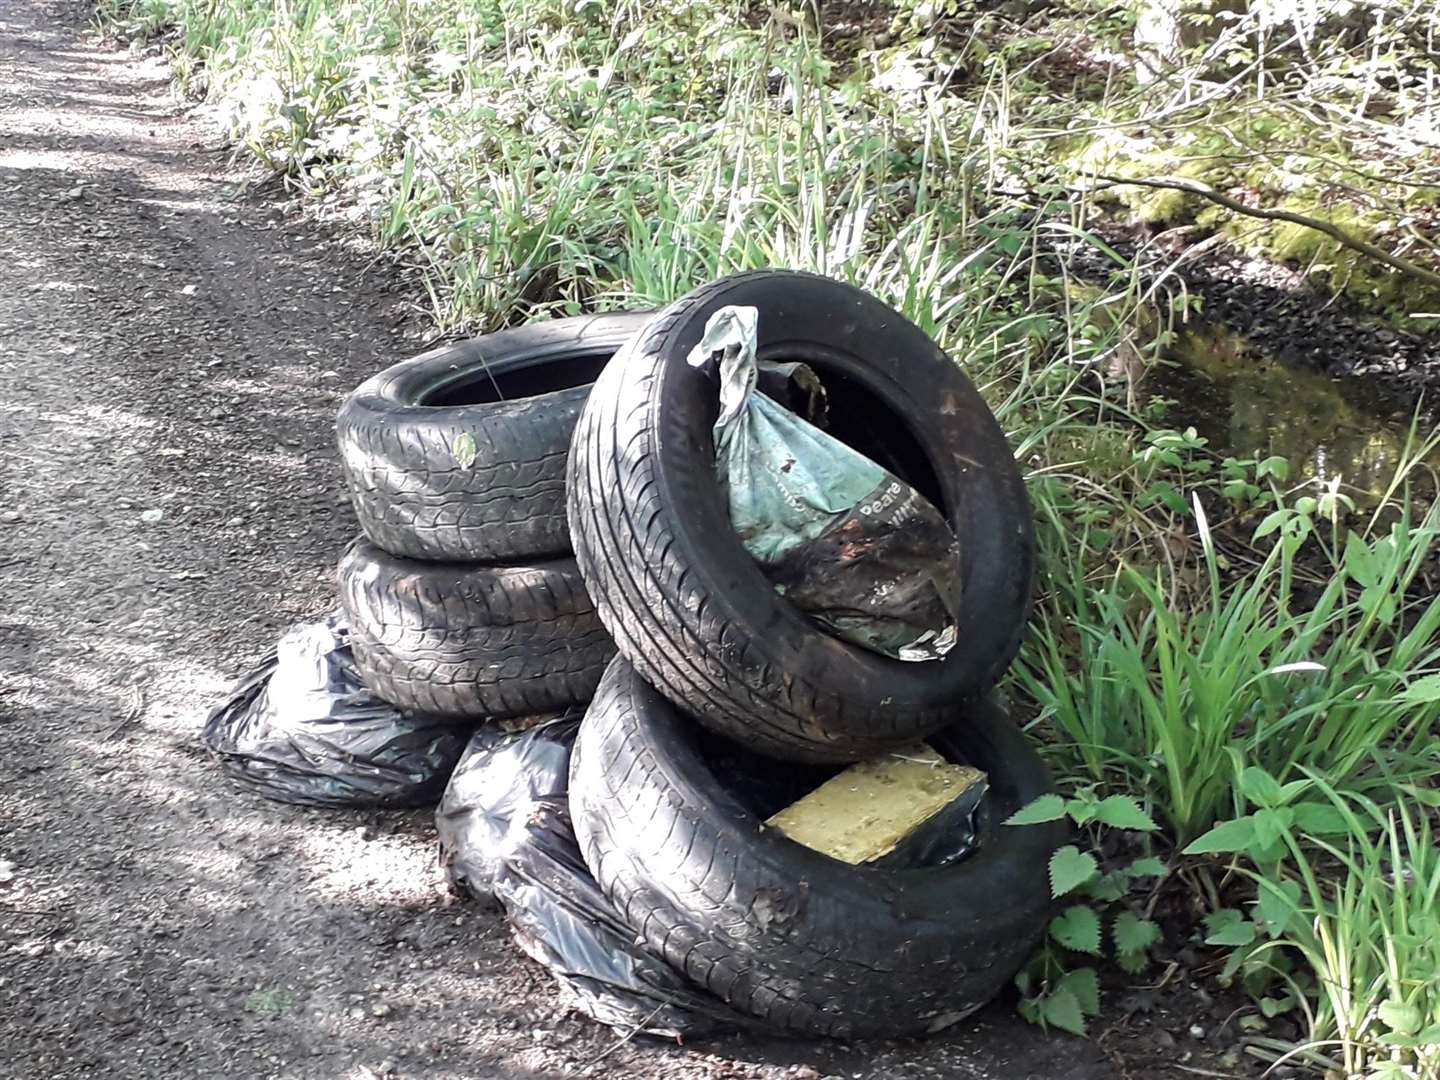 There have been reports of fly-tipping at the woods too